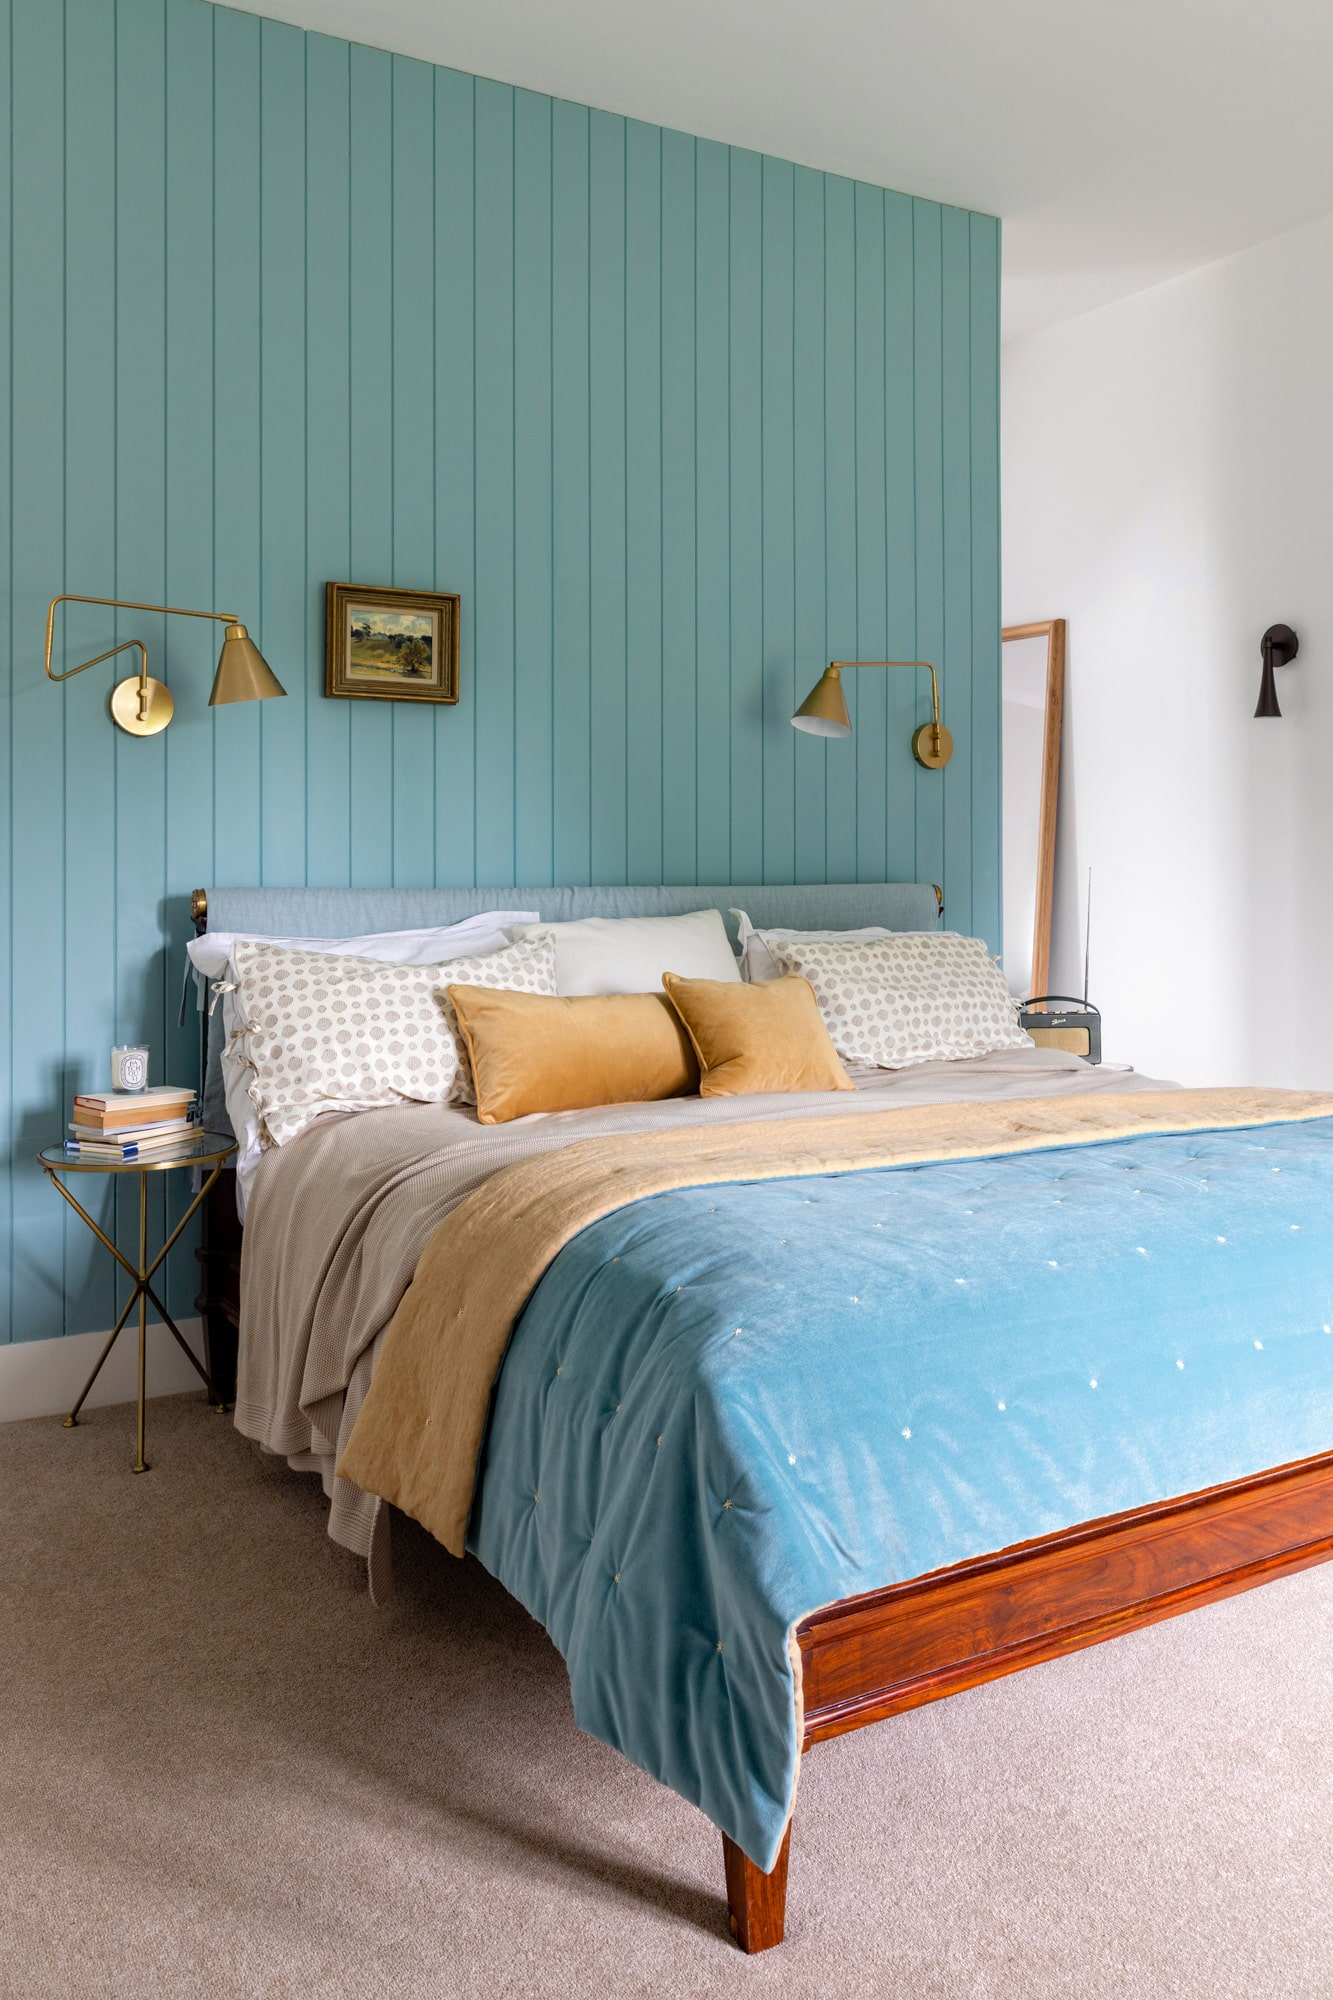 Interior photo: bedroom in a country house with blue wooden paneling, wide bed, gold hanging lights on each side